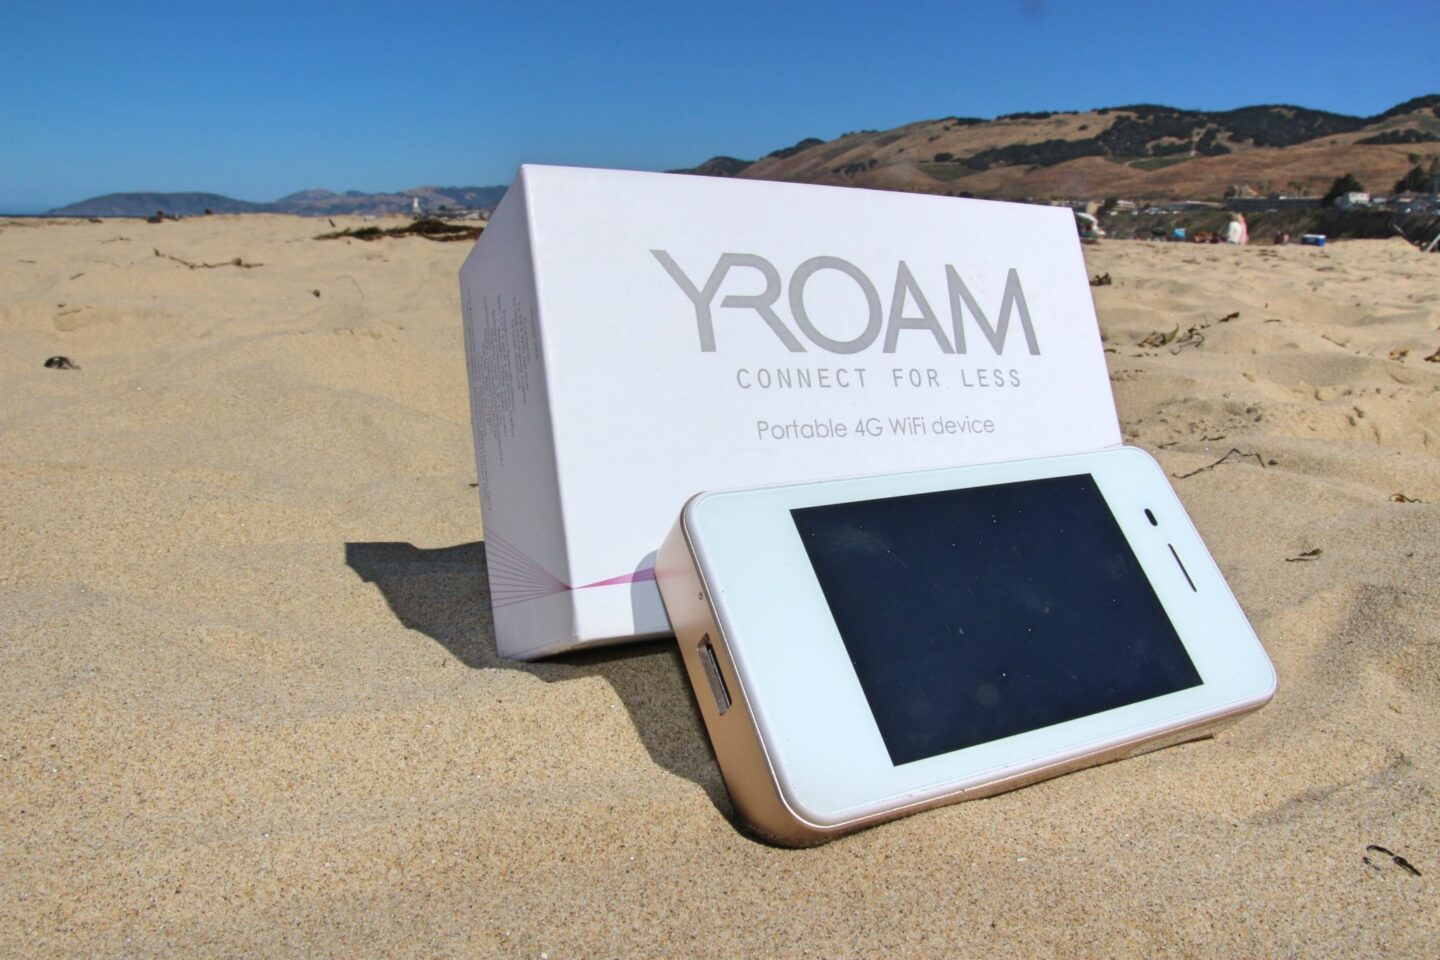 Roam Far and Wide with a YRoam Portable Wi-Fi Device